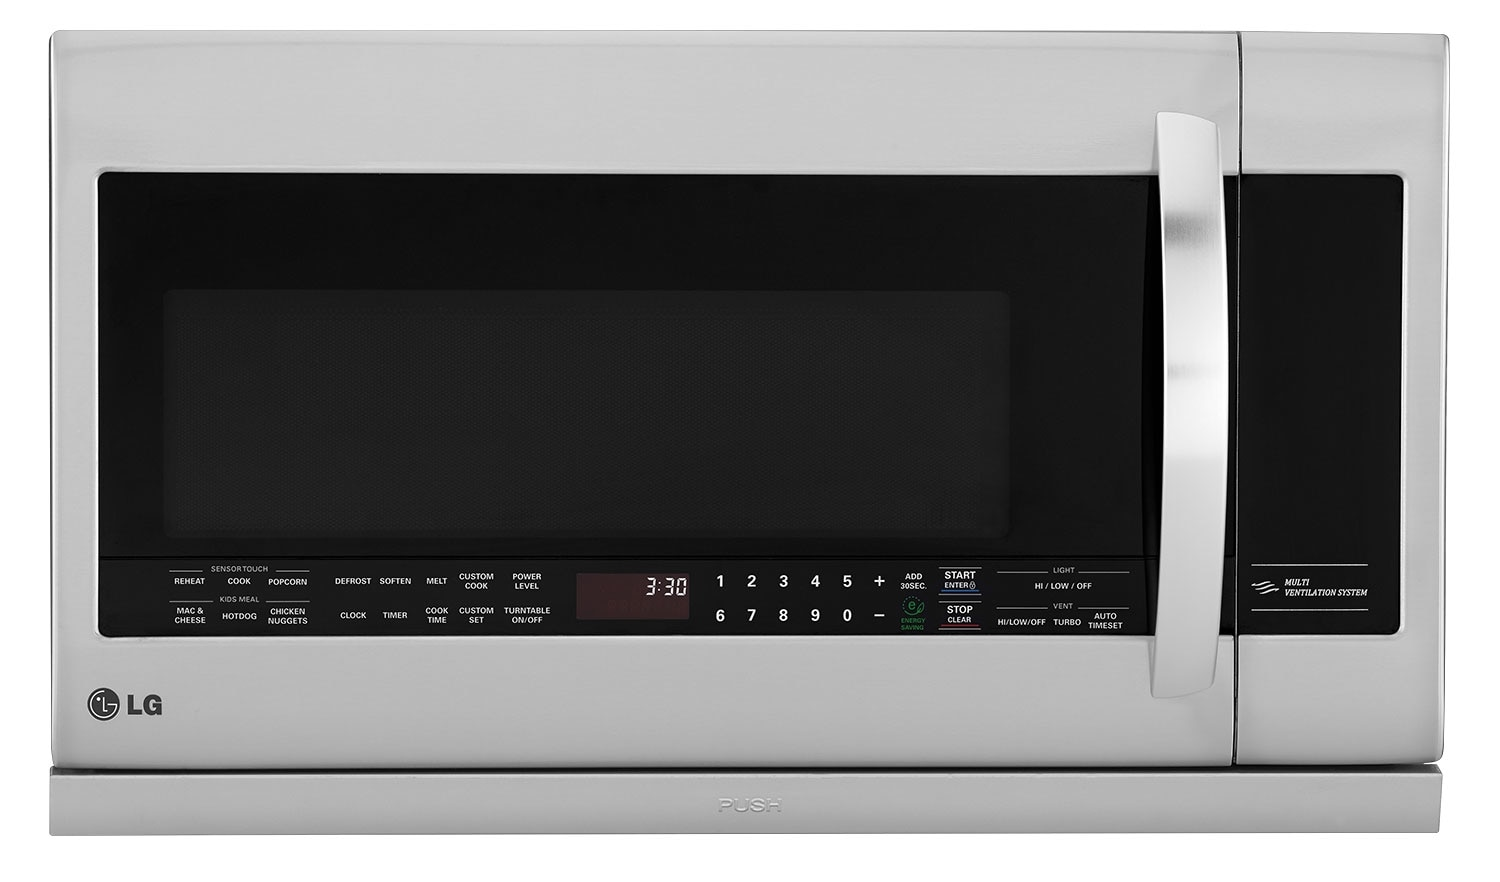 LG 2.2 Cu. Ft. Over-the-Range Microwave – Stainless Steel